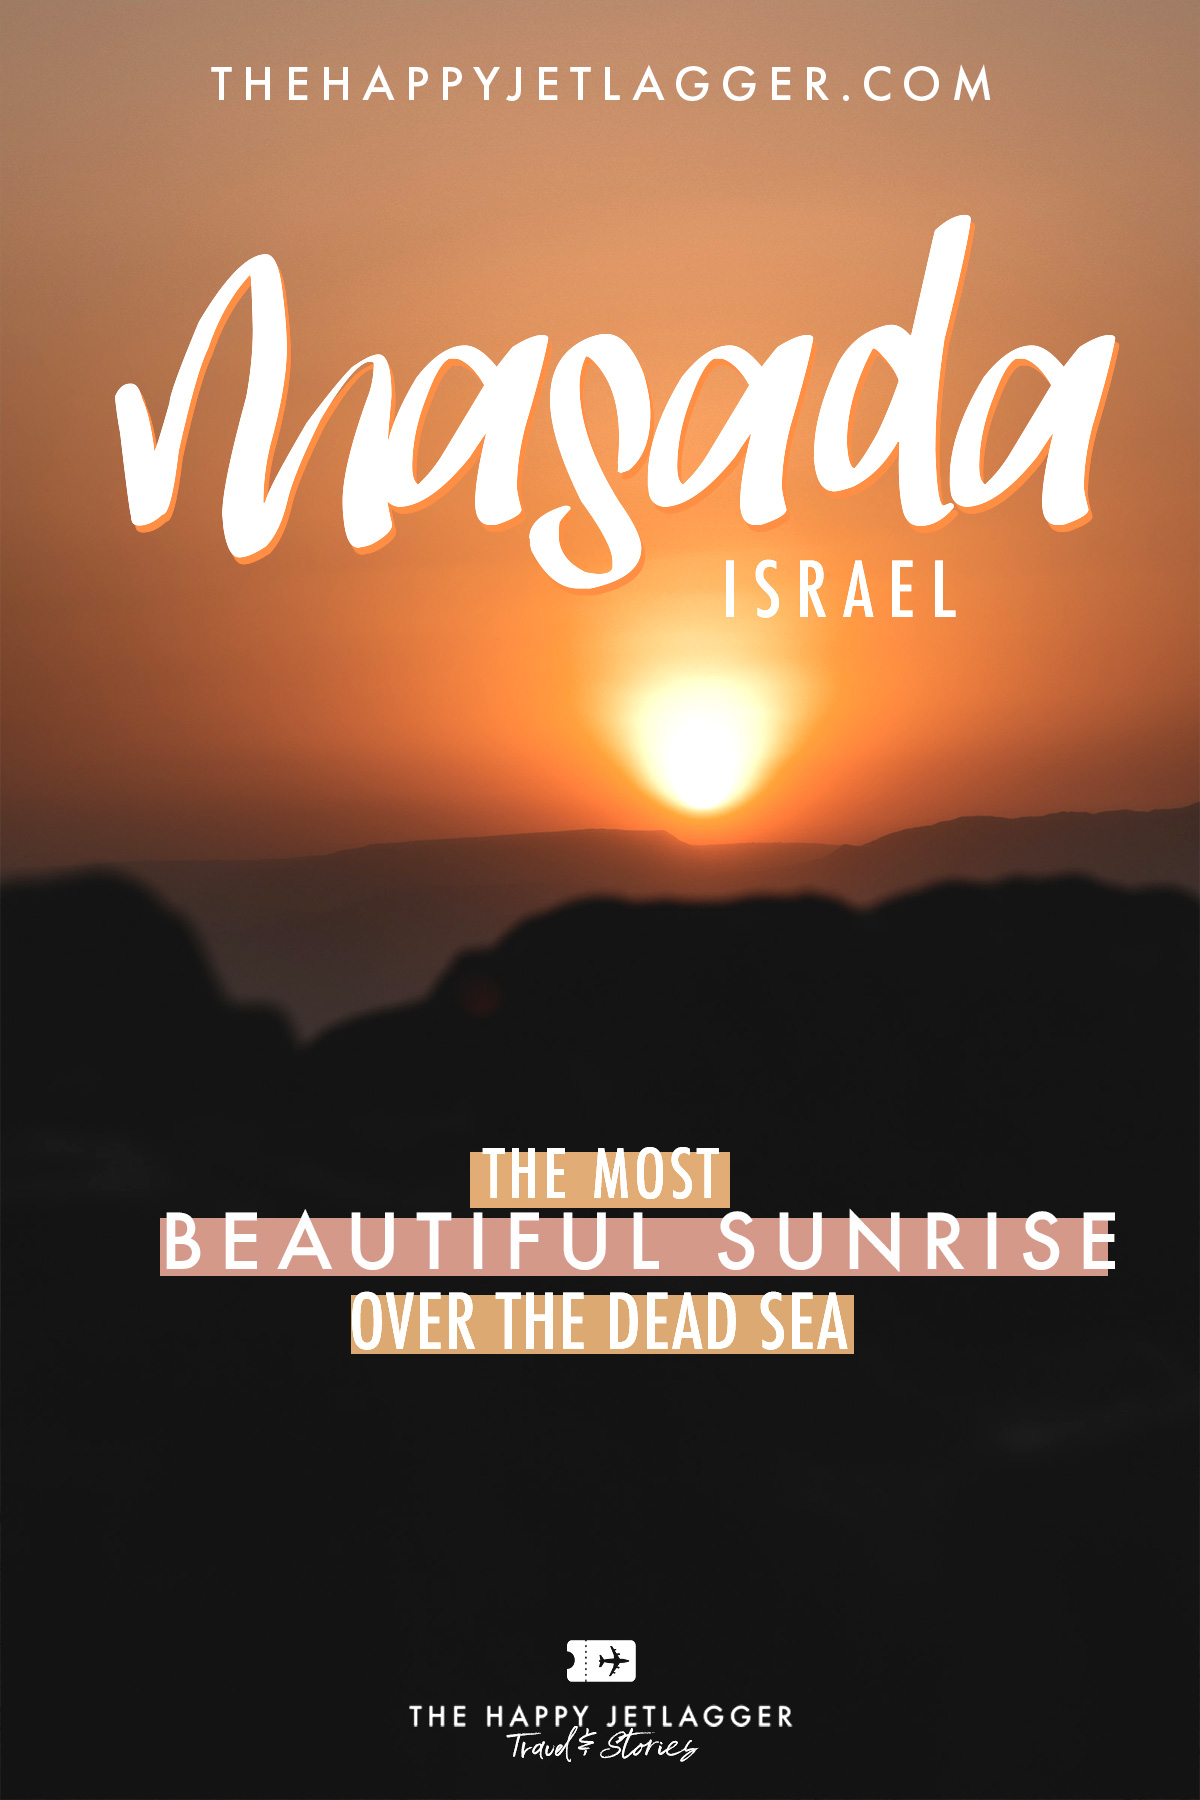 Masada sunrise Dead Sea Israel